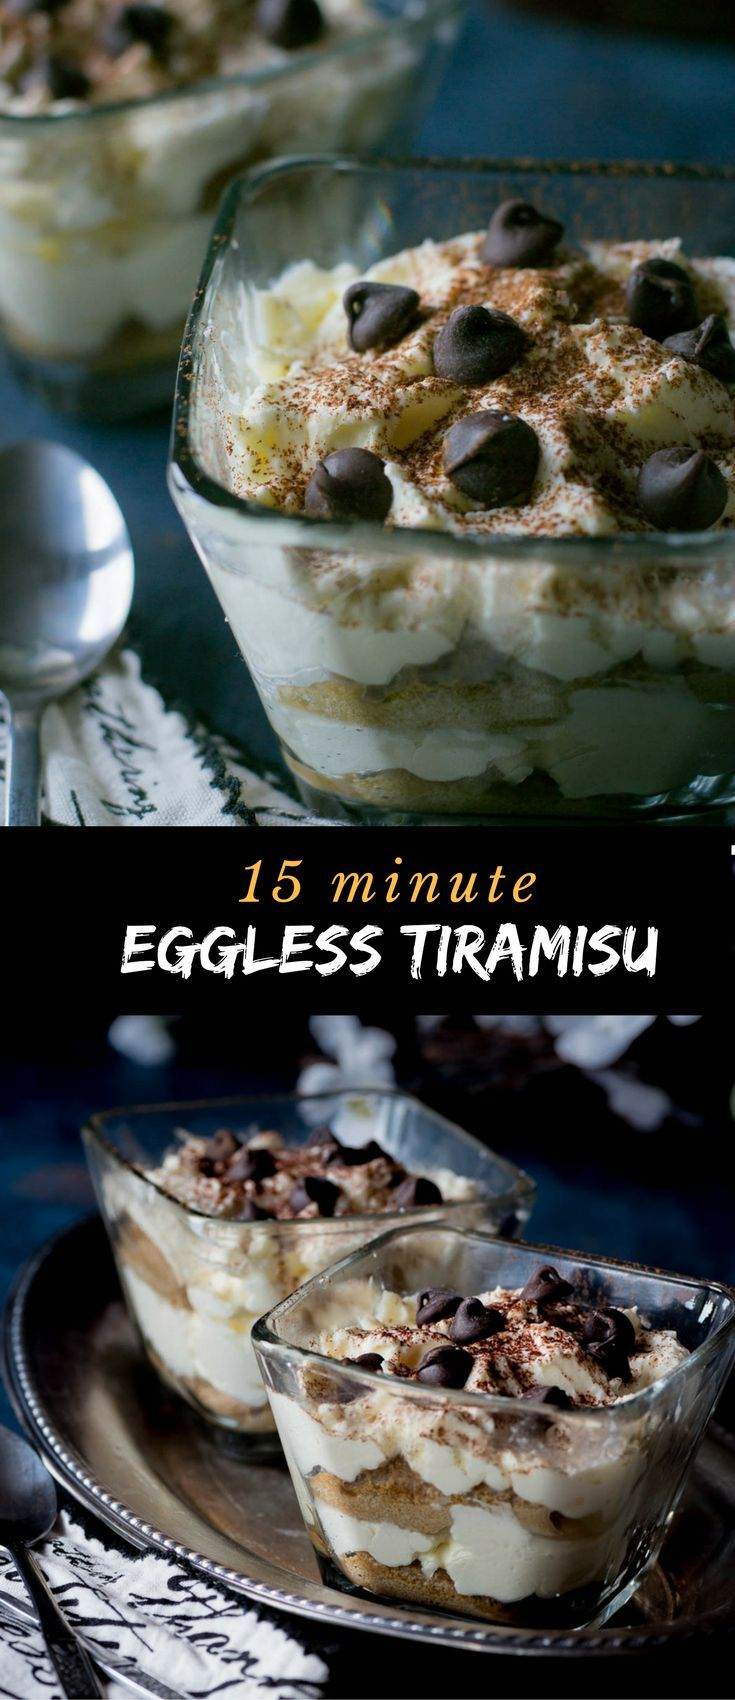 You'll enjoy making this Tiramisu without raw eggs since 15 minutes is all it takes.   via @simmertoslimmer